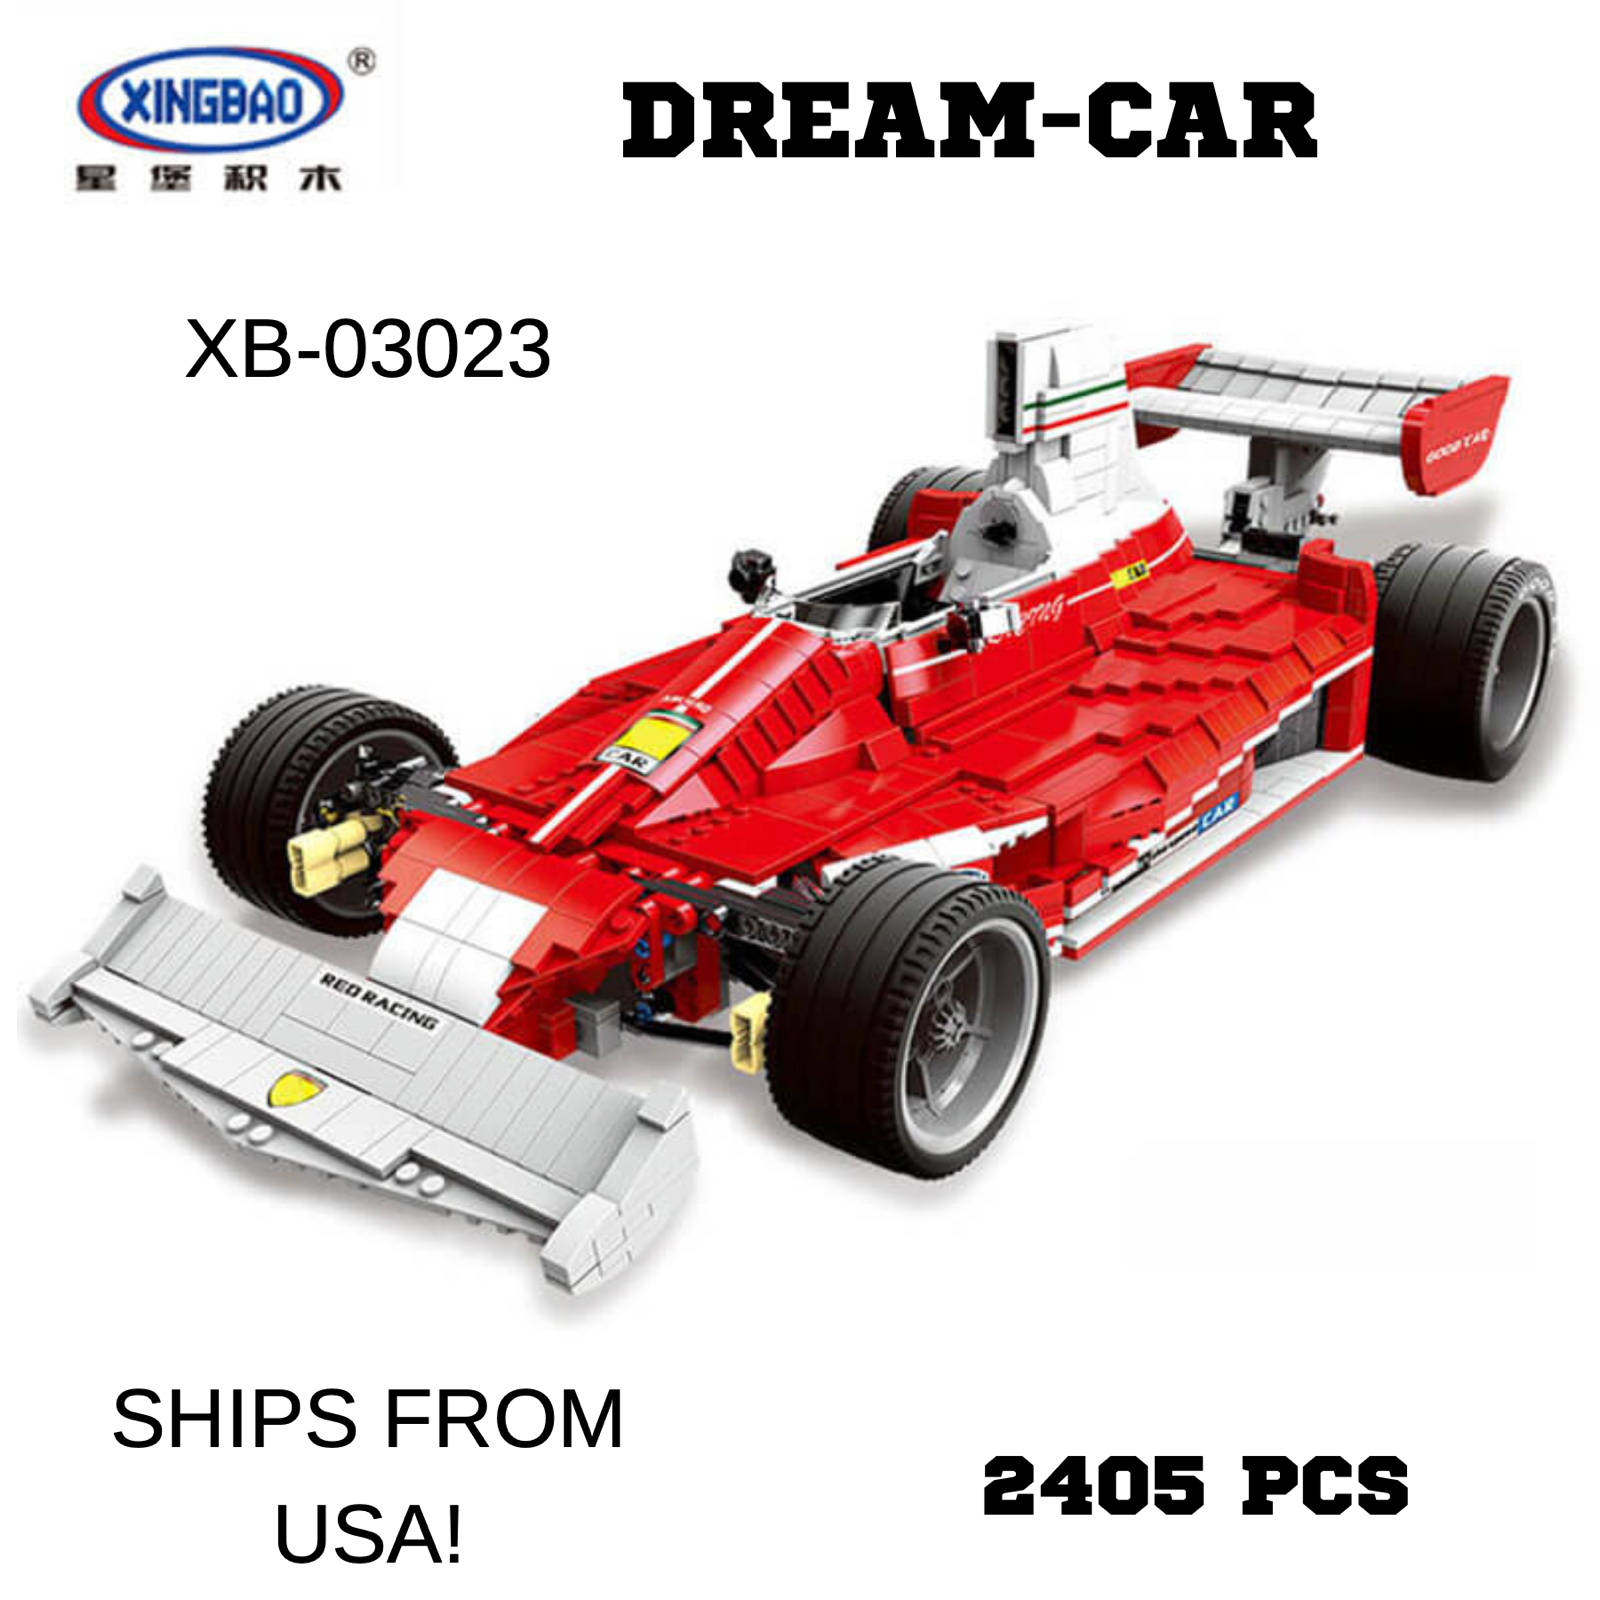 Xingbao Dream Car 2405pcs. XB-03023. Ships from USA